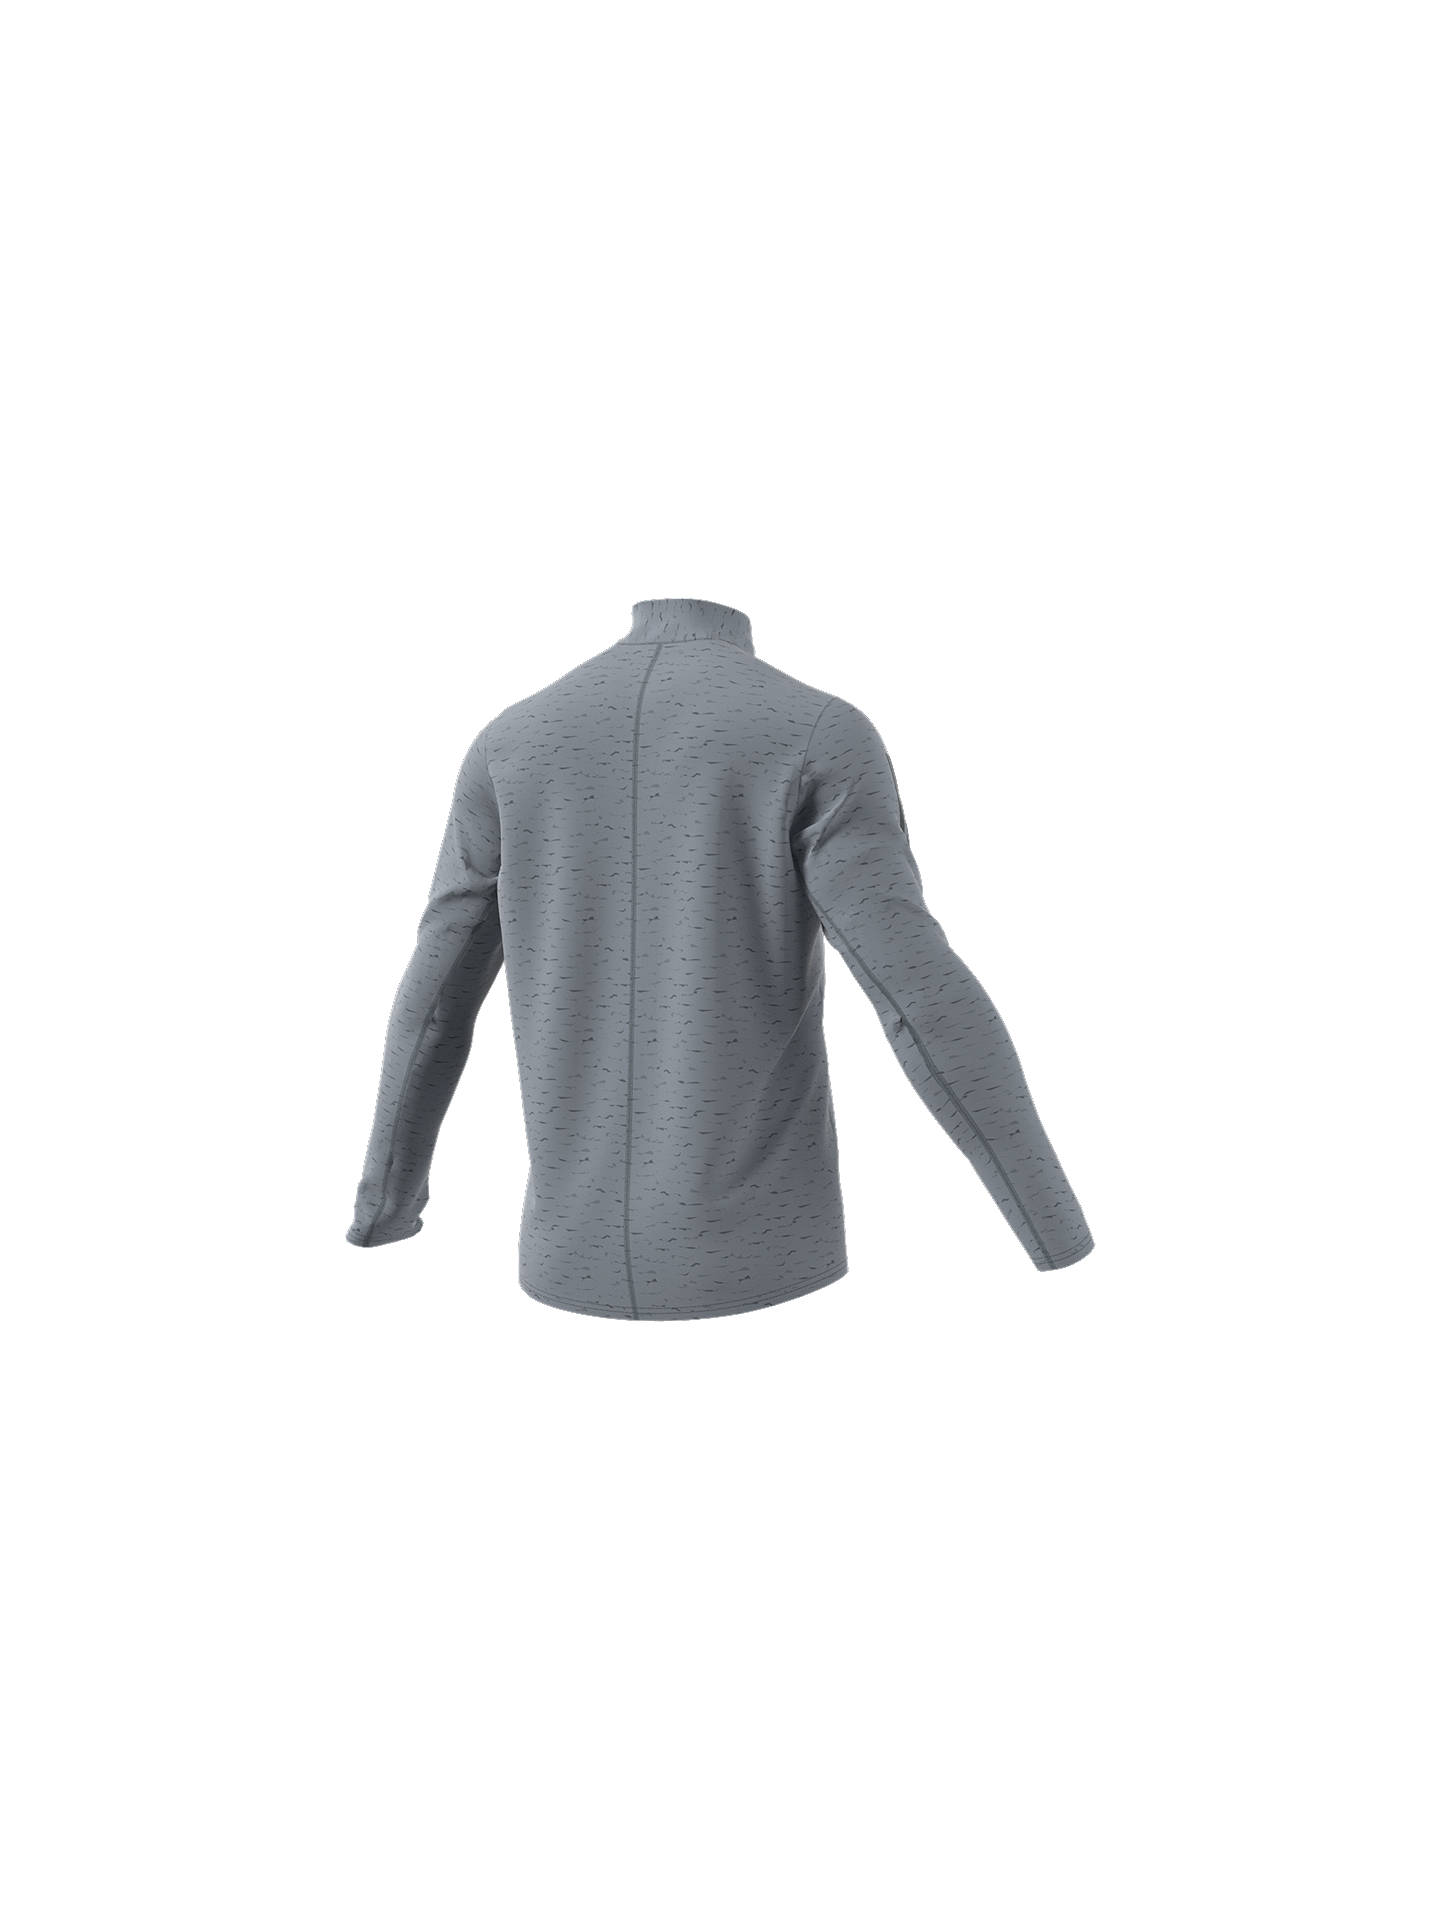 a3d0fad7 adidas Supernova Long Sleeve Crew Neck Training Top, Ink at John ...